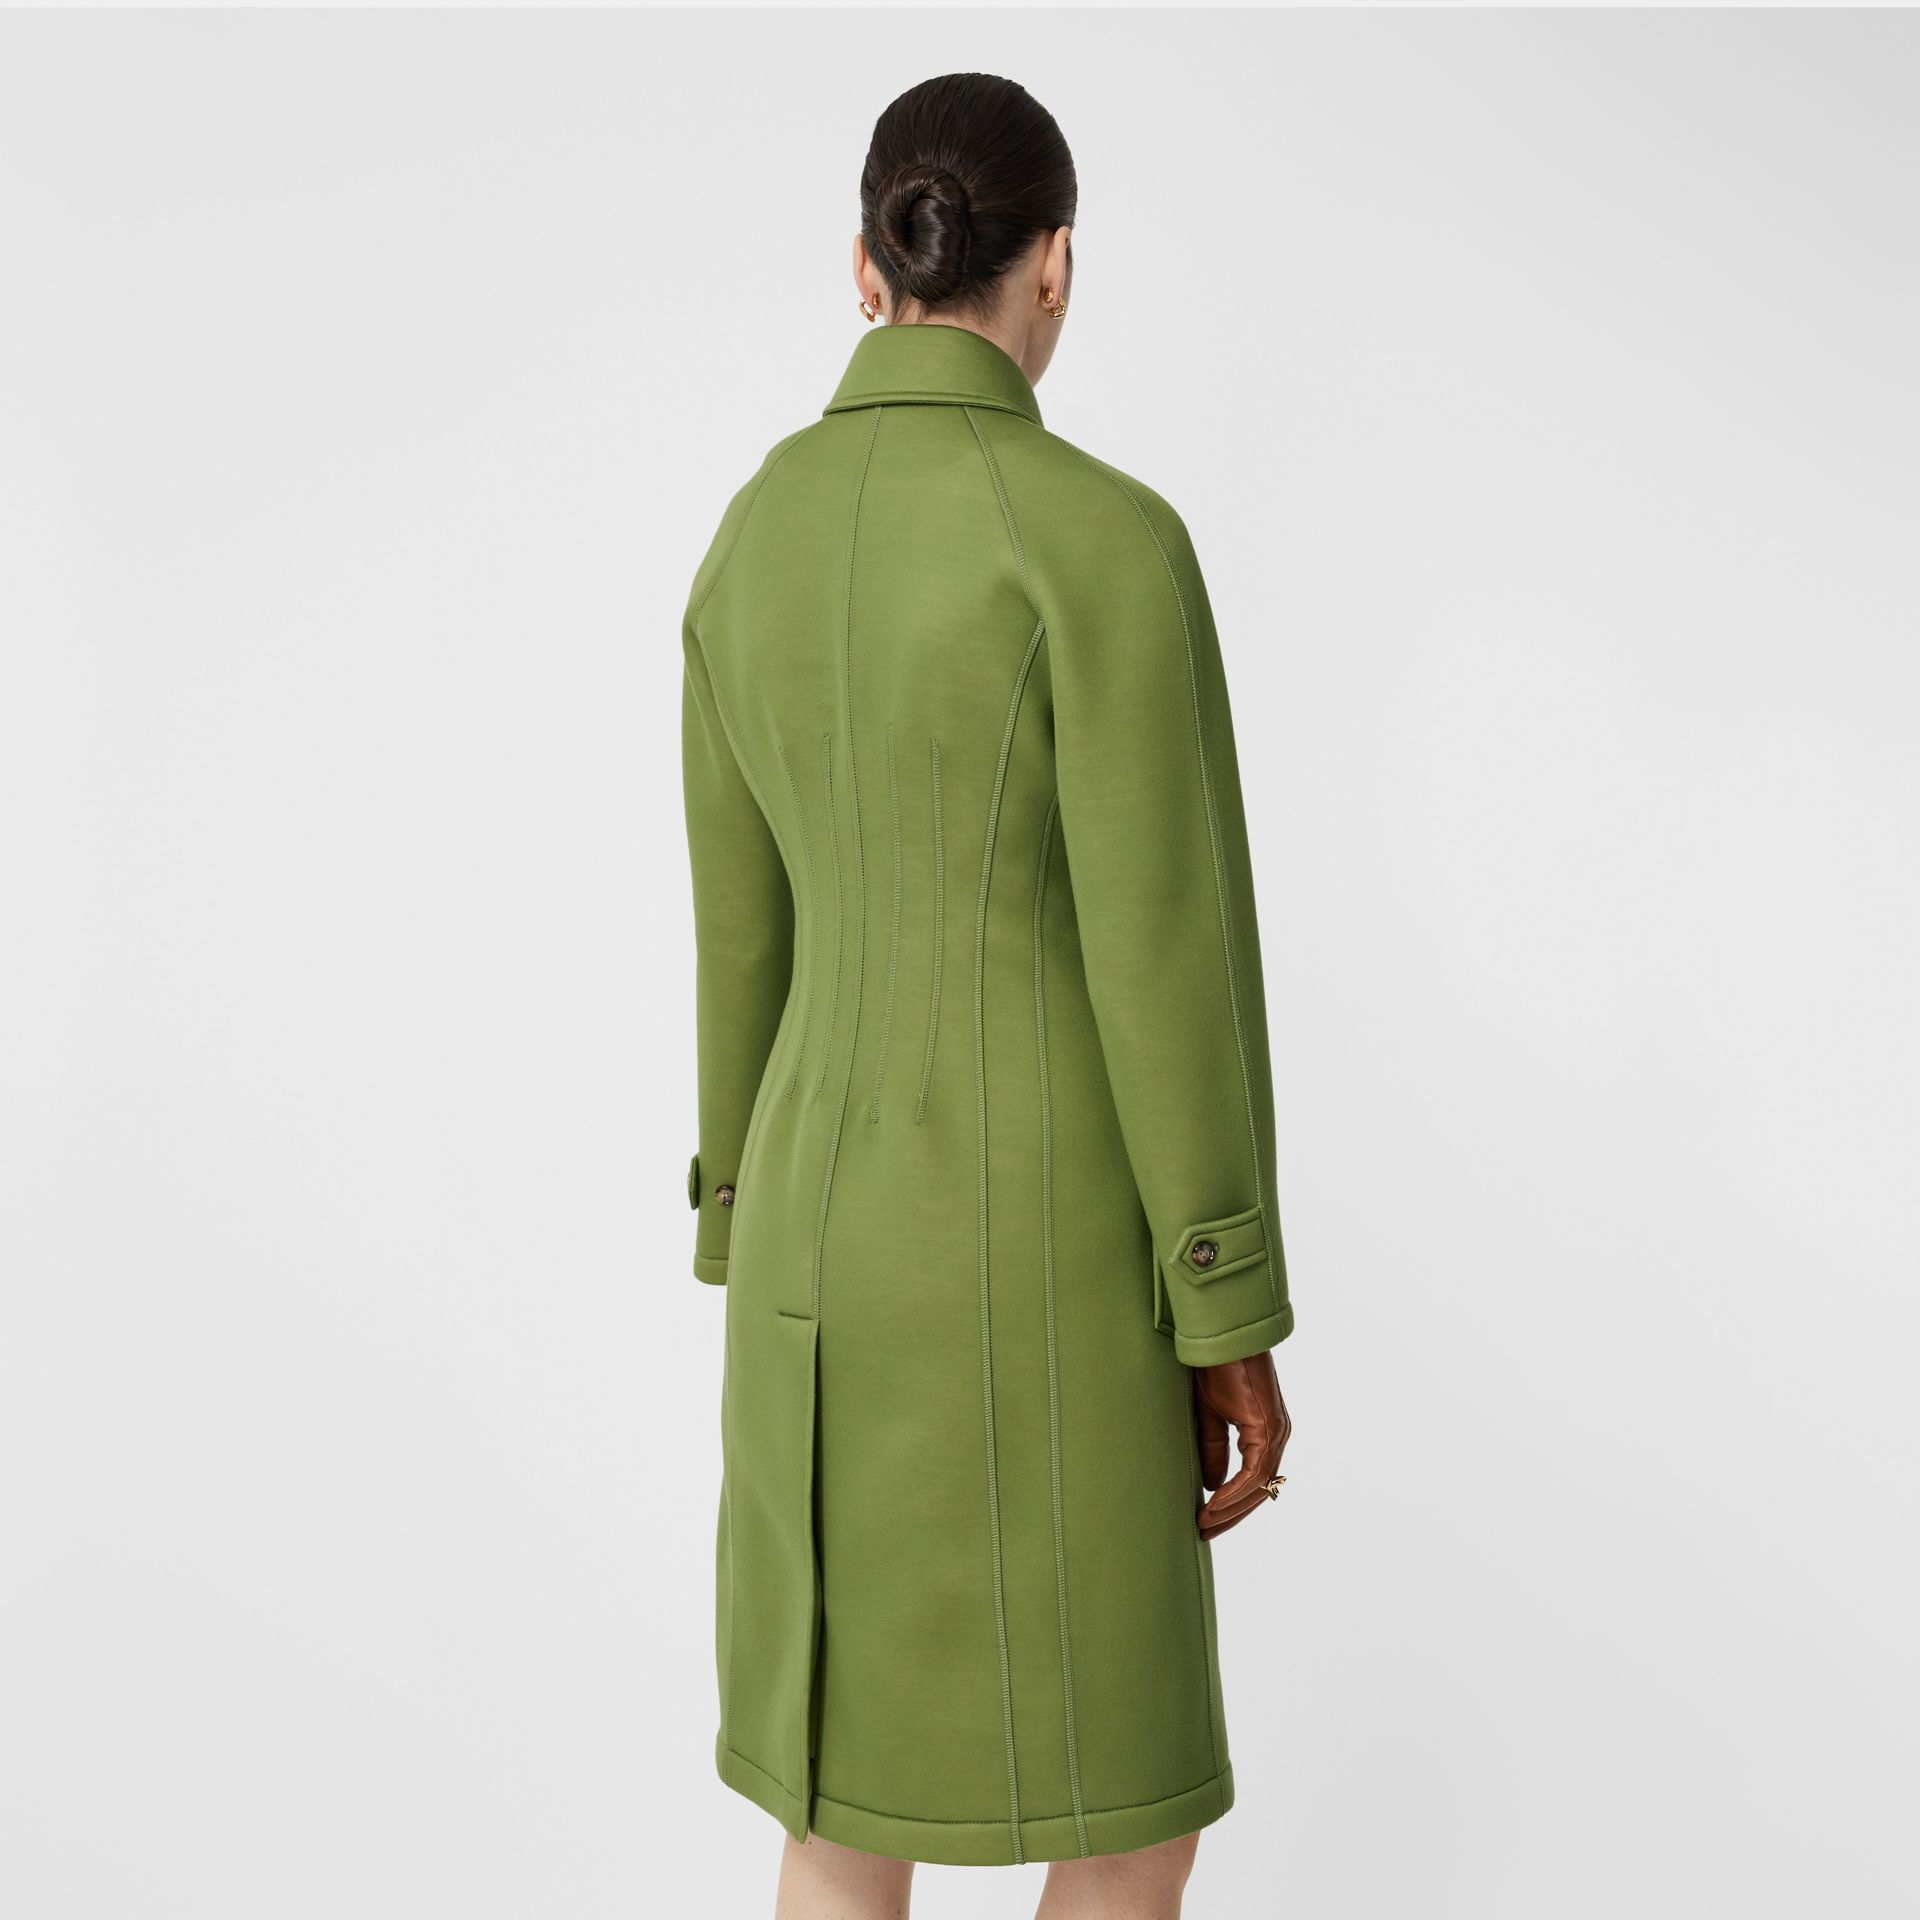 Bonded Neoprene Tailored Car Coat in Cedar Green - Women | Burberry - gallery image 2